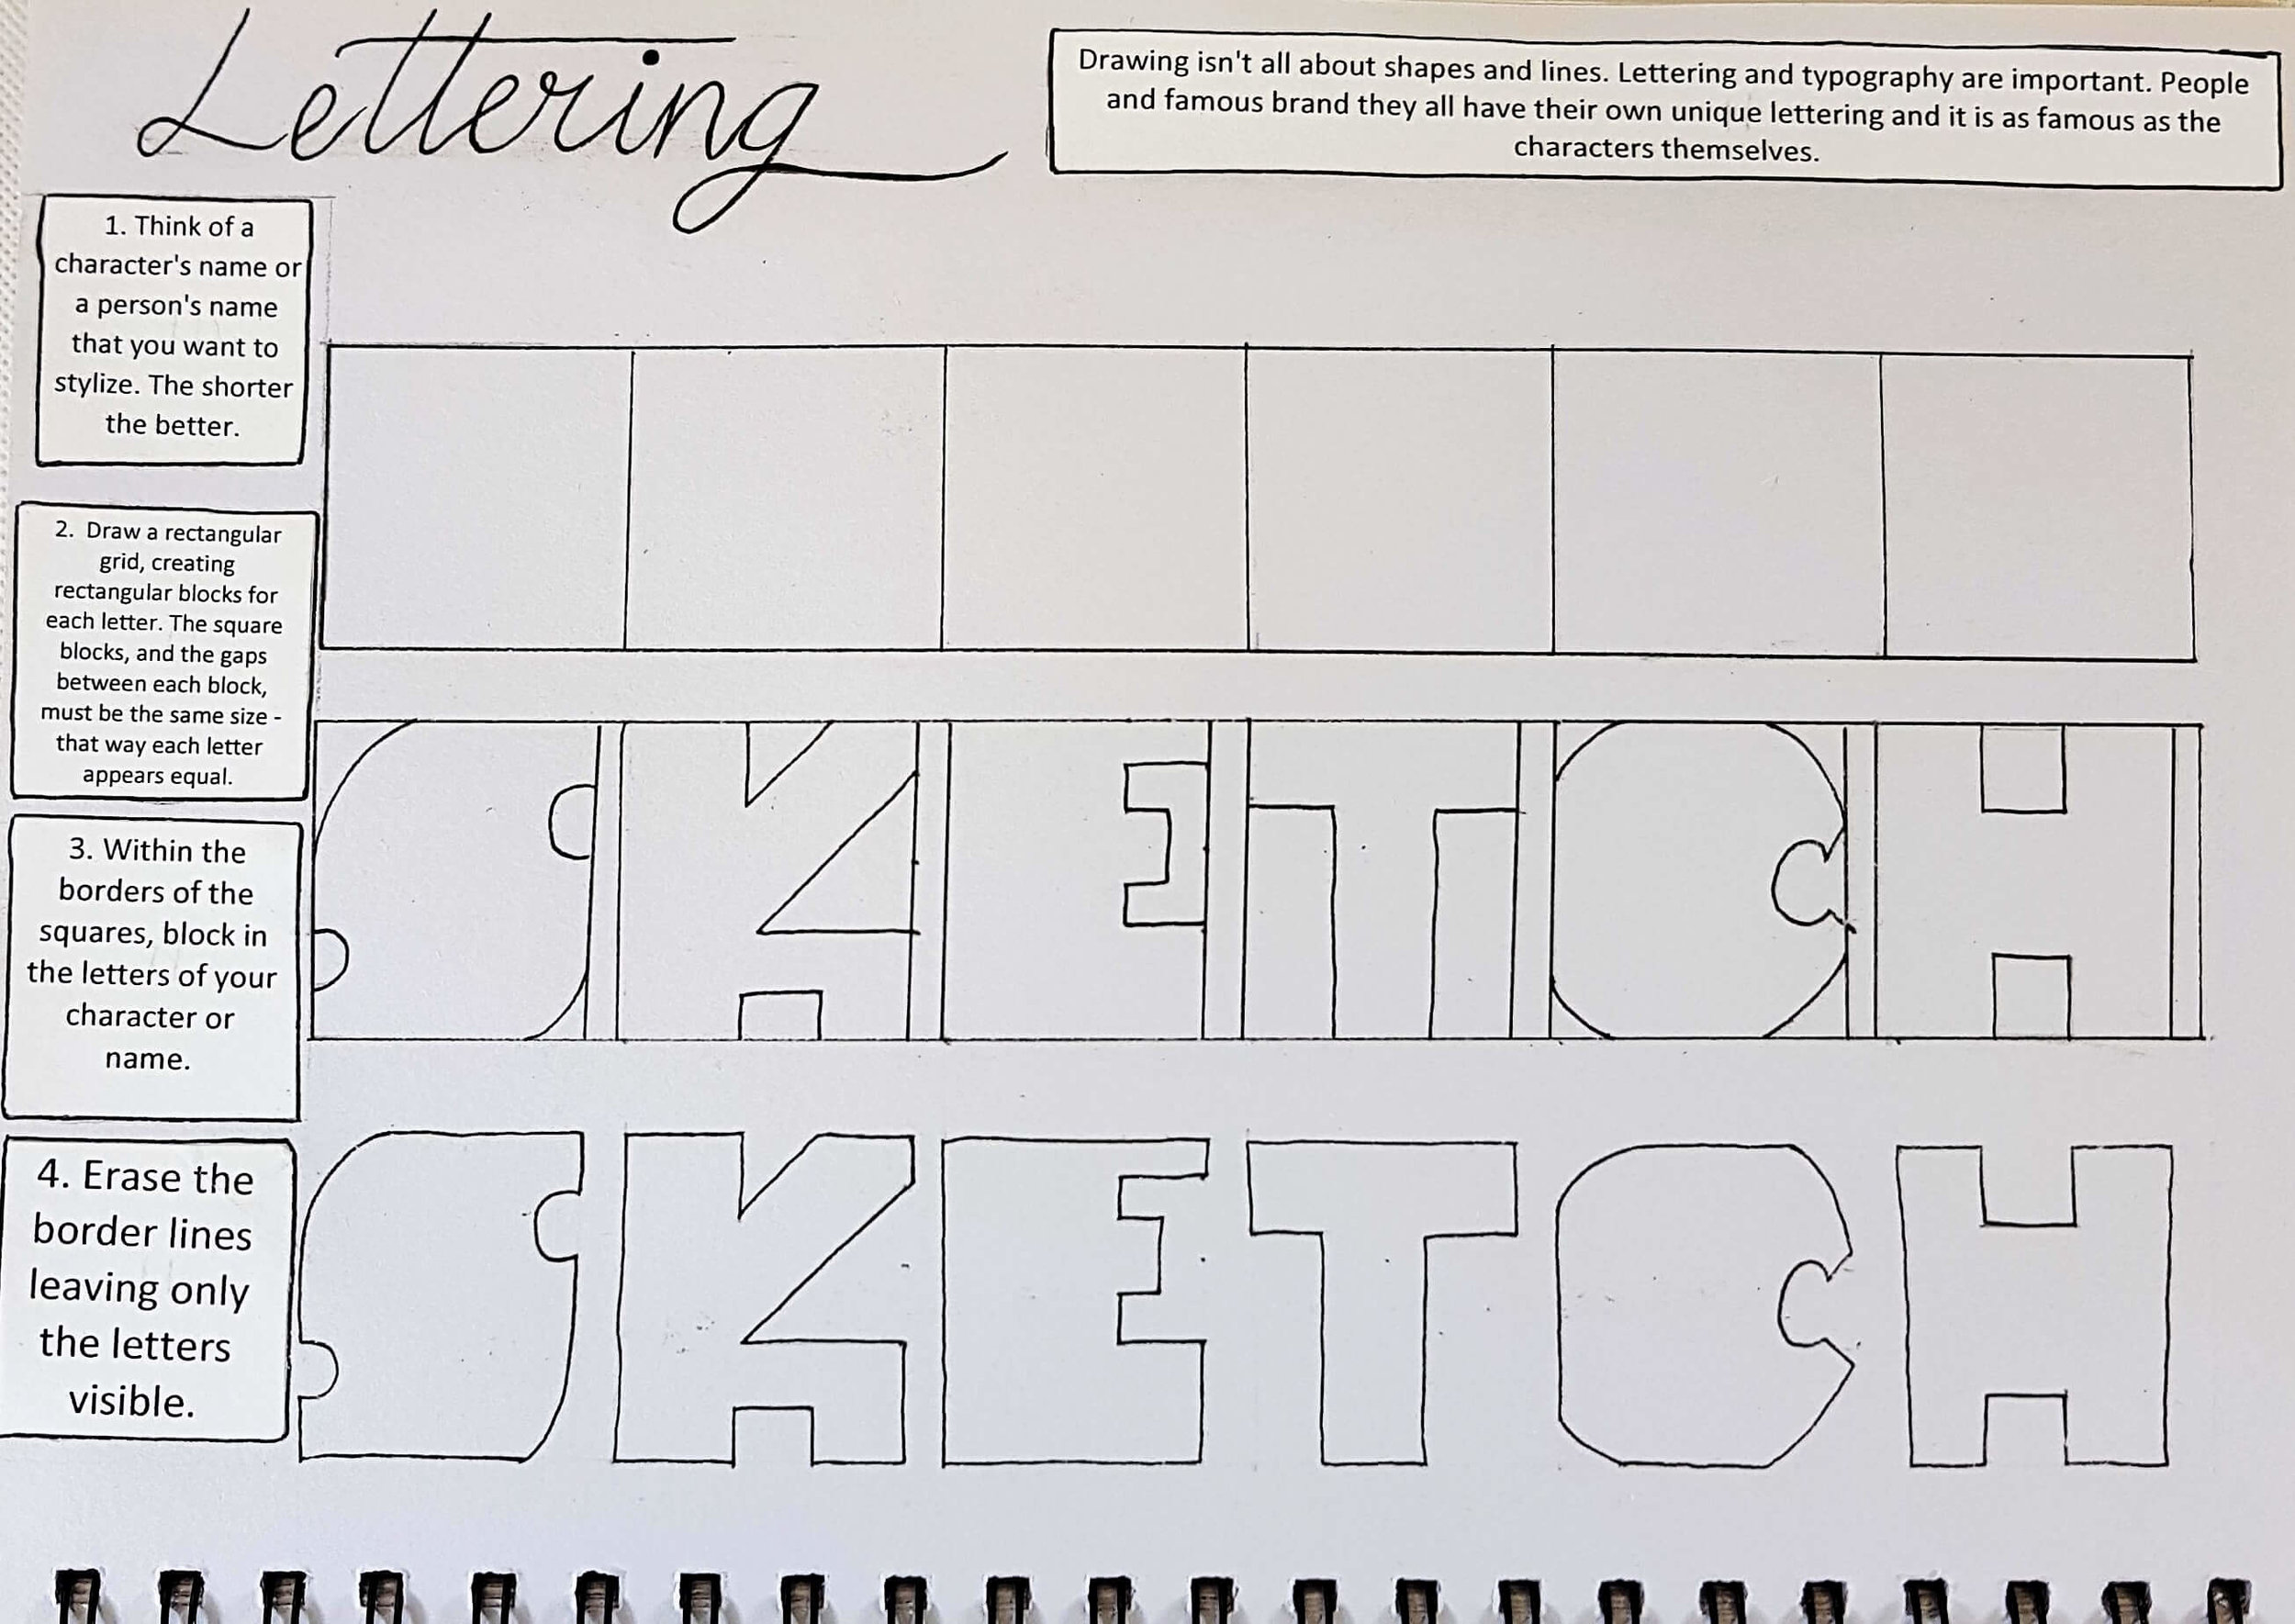 Day 9: Lettering (part 1)